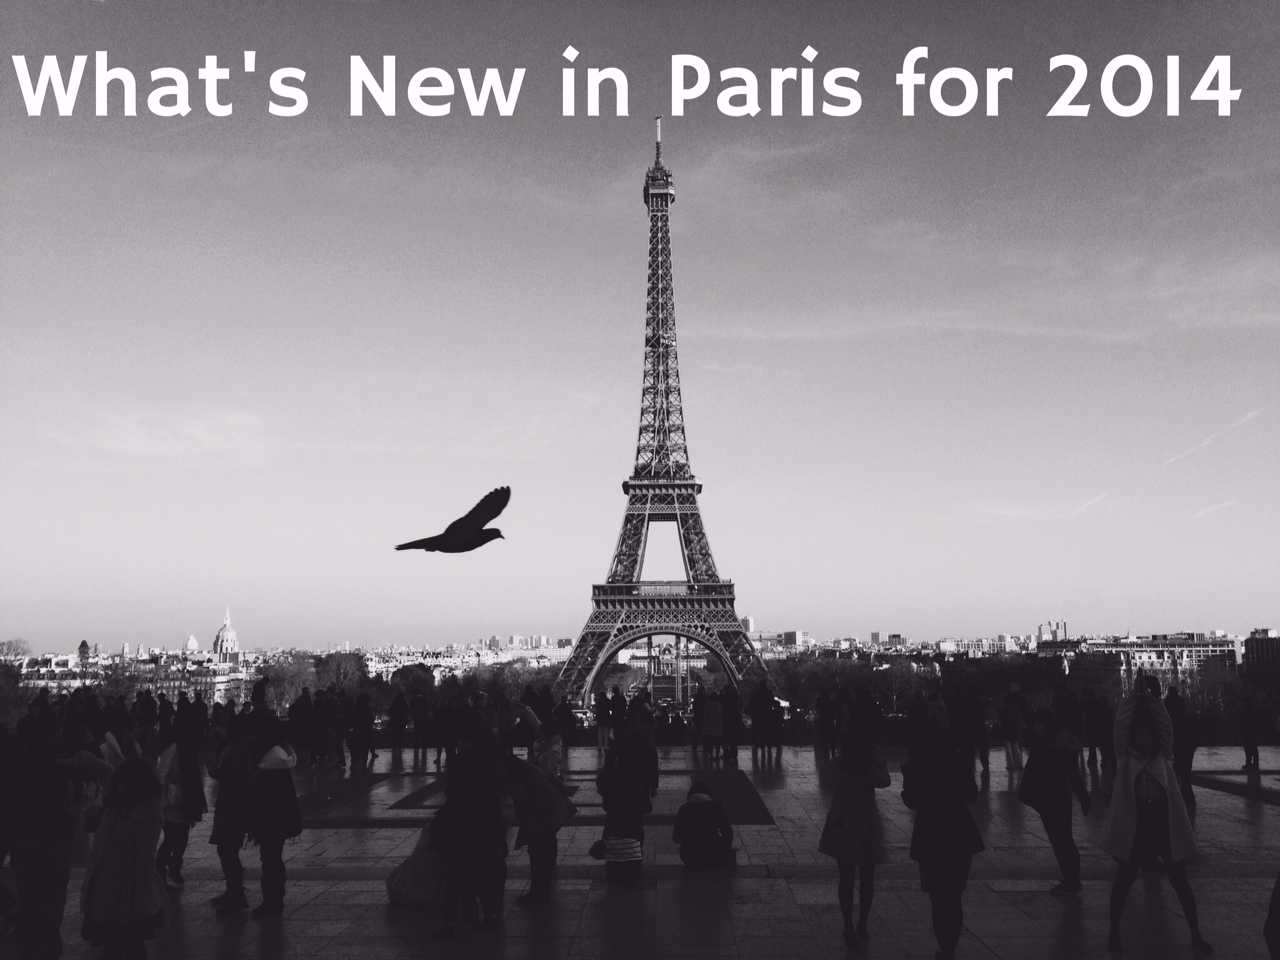 New in Paris for 2014